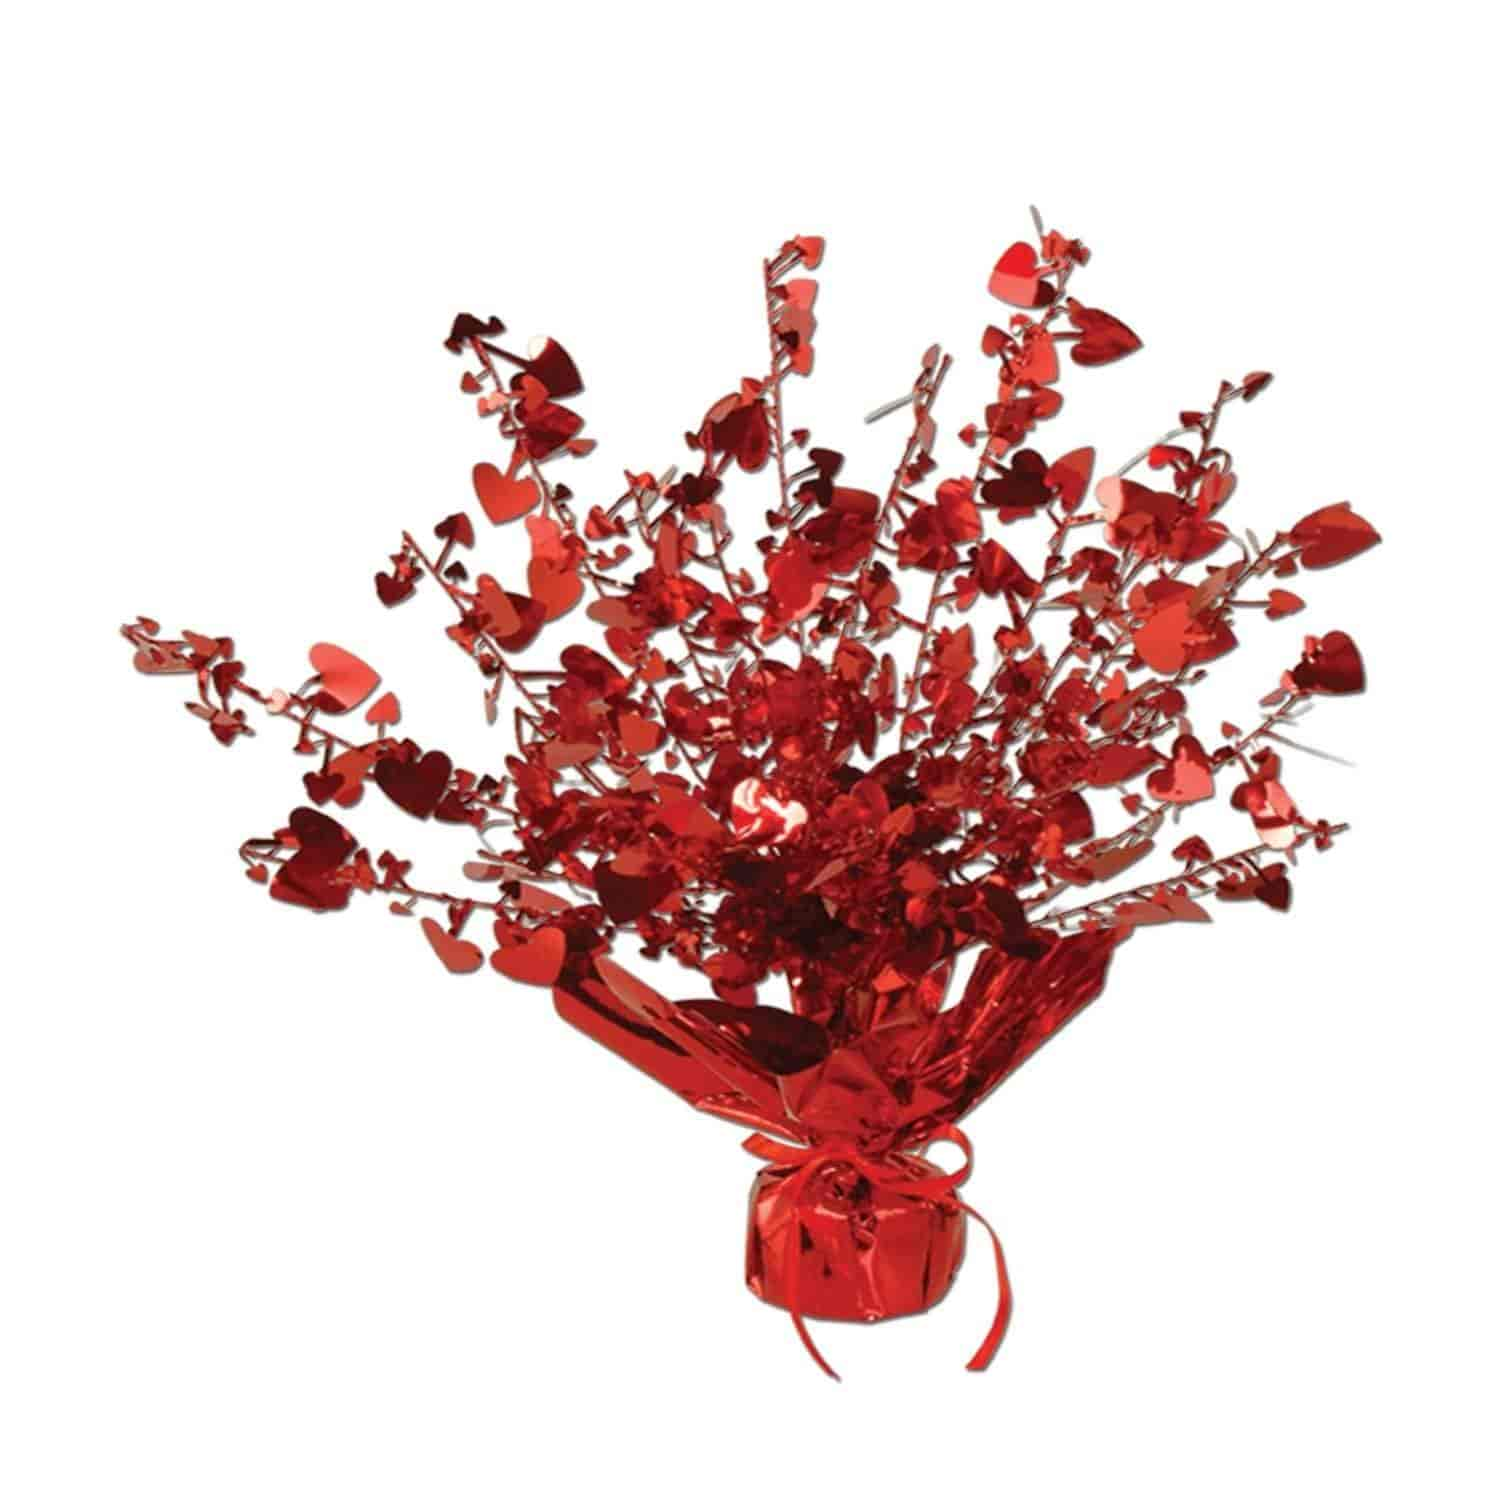 Fish aquarium just dial - Heart Gleam N Burst Centerpiece Red Party Accessory 1 Count